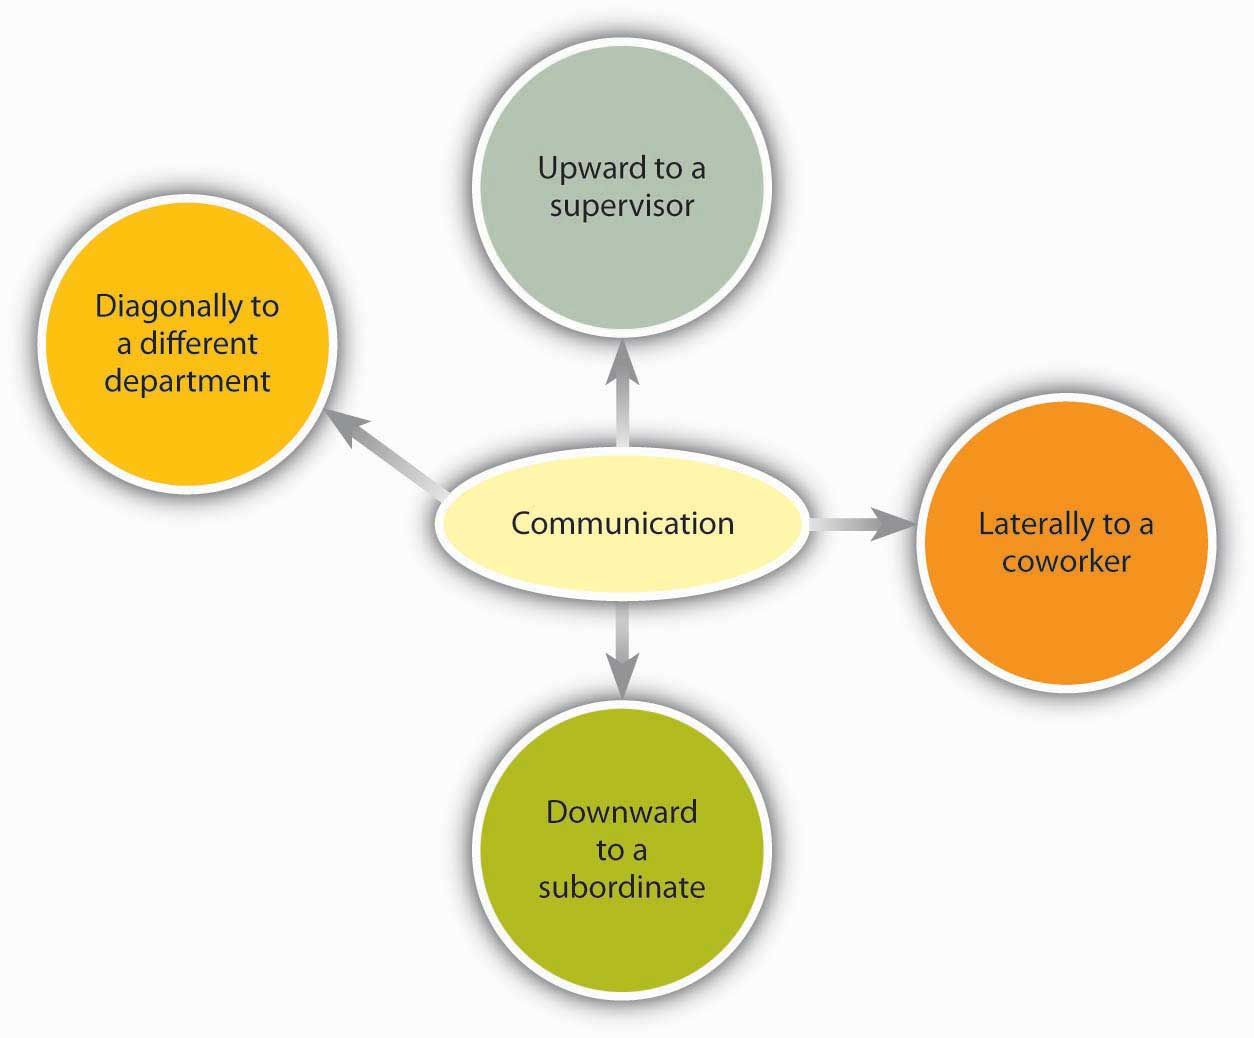 Direction of communication within organizations